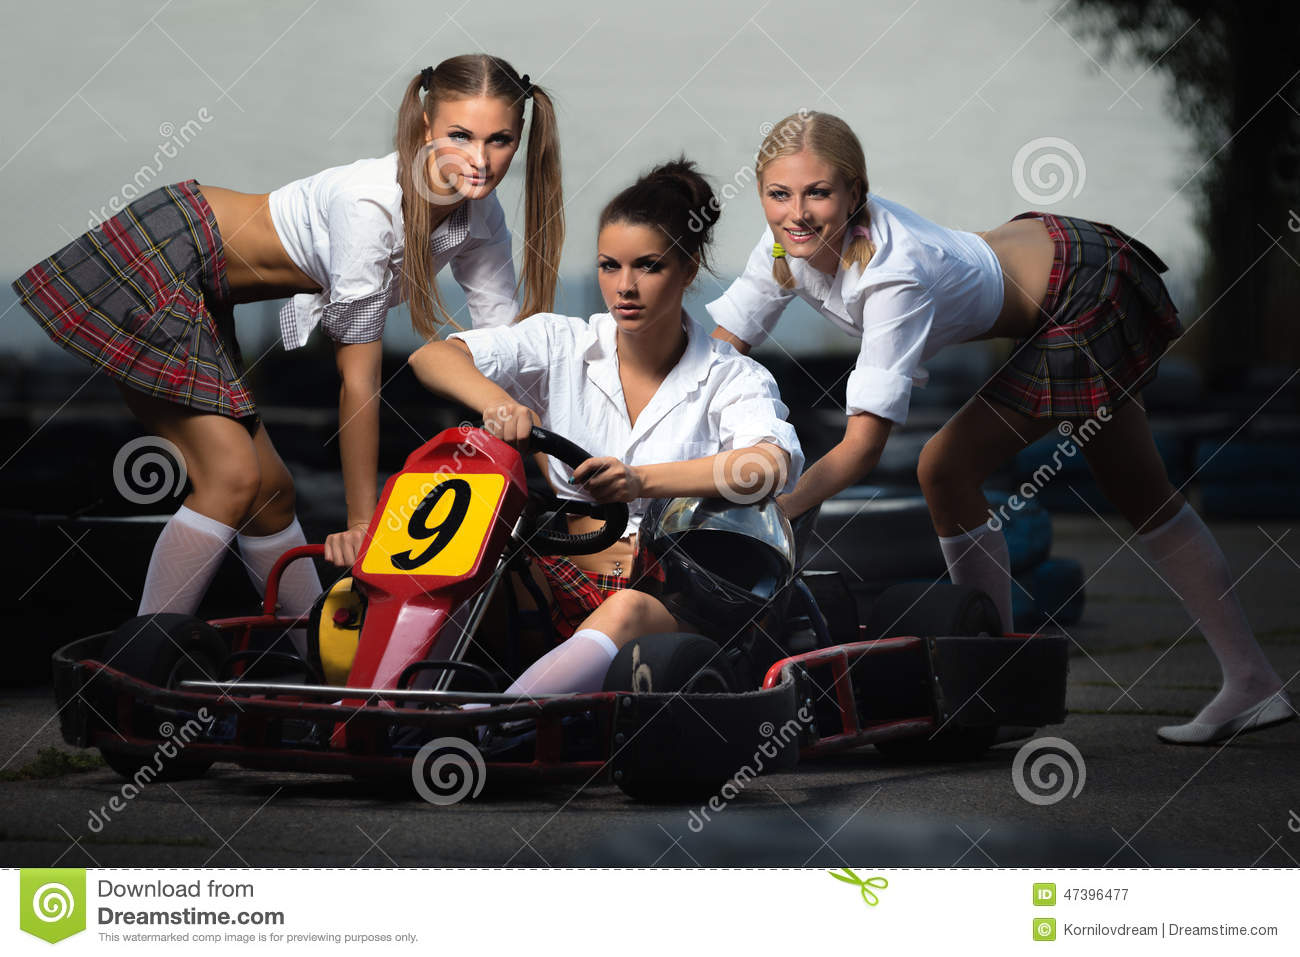 Criticism nude girls on go kart the